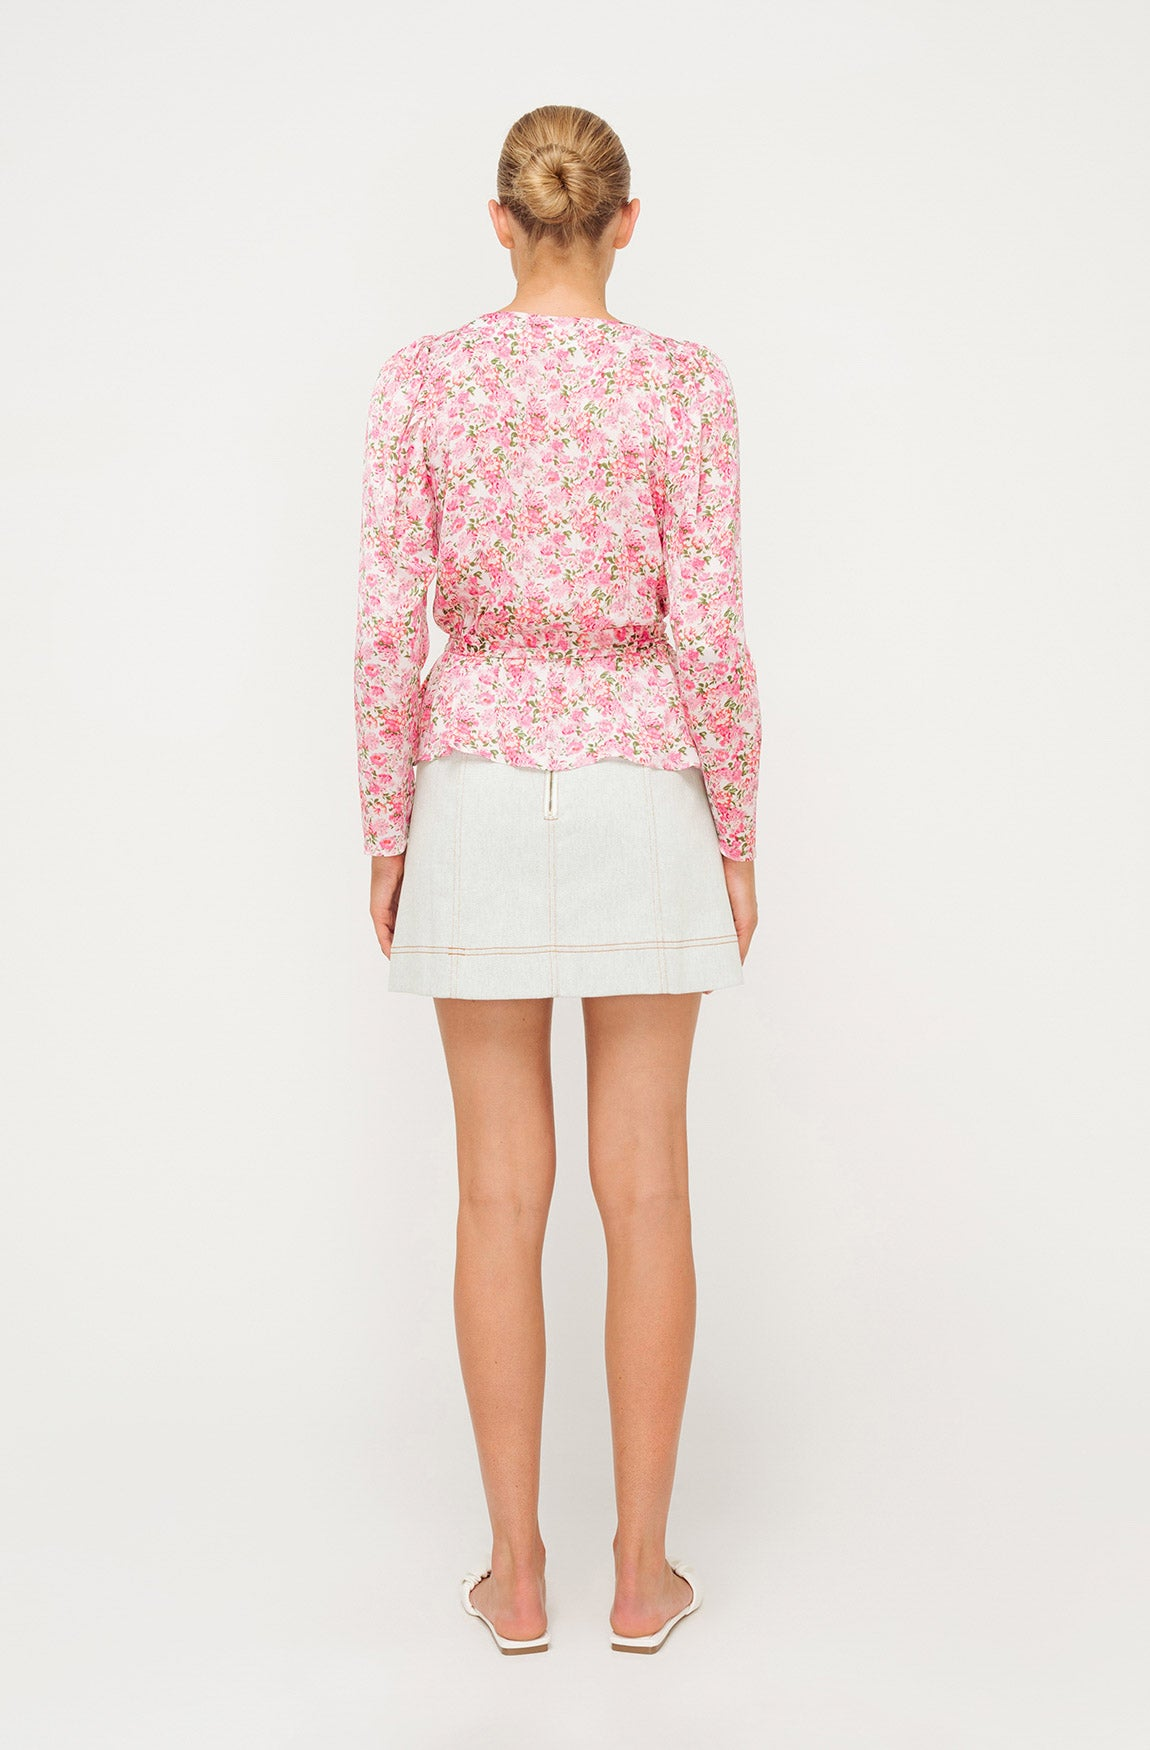 LUCY FLORAL BLOUSE